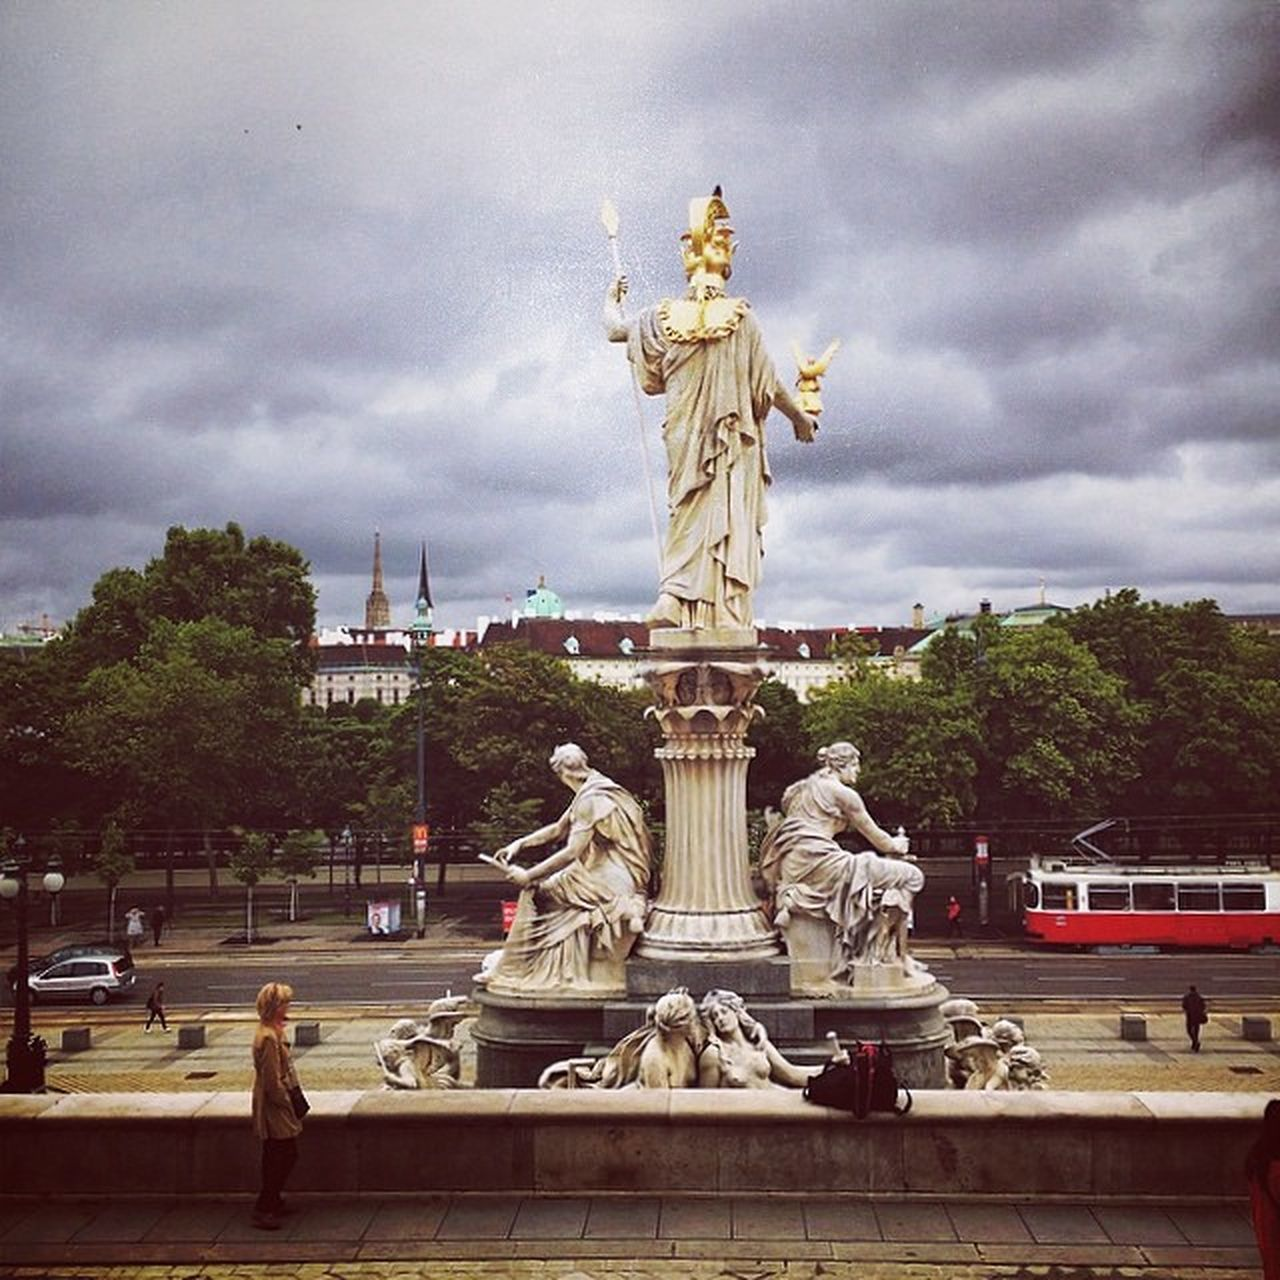 statue, sculpture, cloud - sky, sky, human representation, art and craft, fountain, female likeness, architecture, travel destinations, male likeness, travel, built structure, outdoors, tourism, building exterior, monument, day, city, tree, water, no people